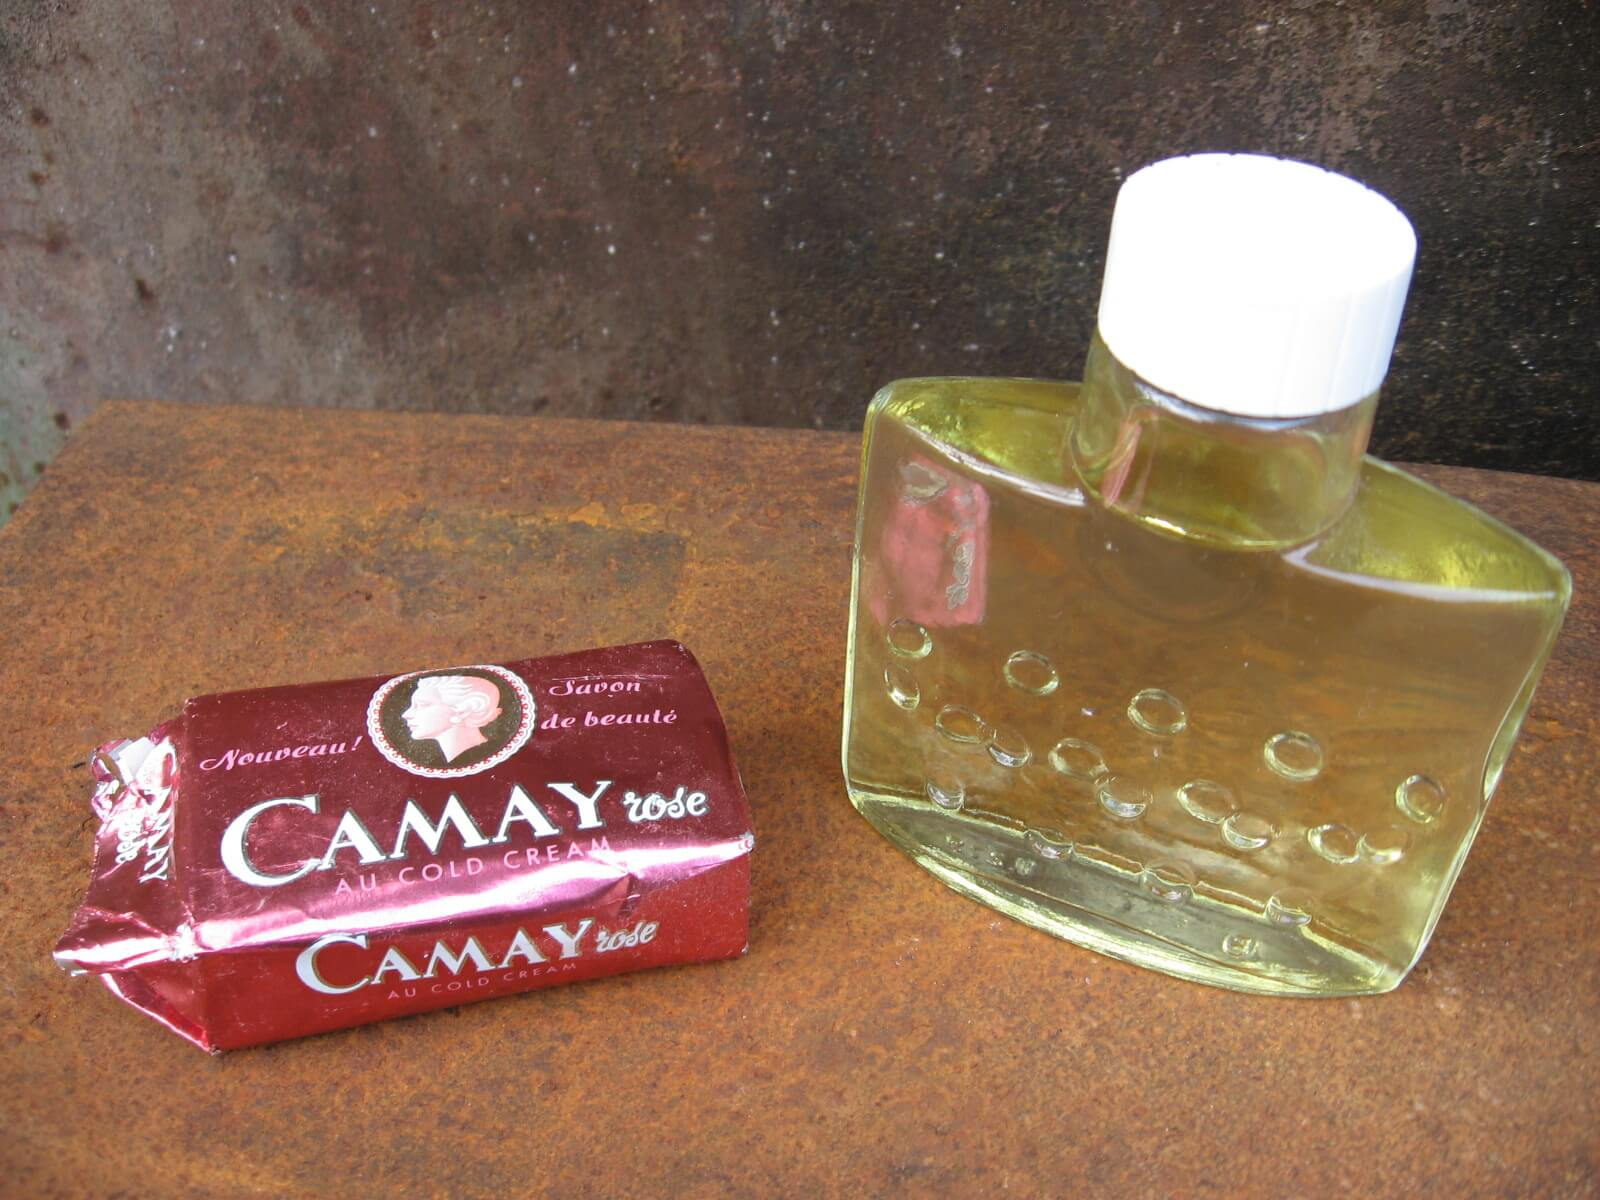 1950s Camay soap and eau de parfum perfume at PumpjackPiddlewick